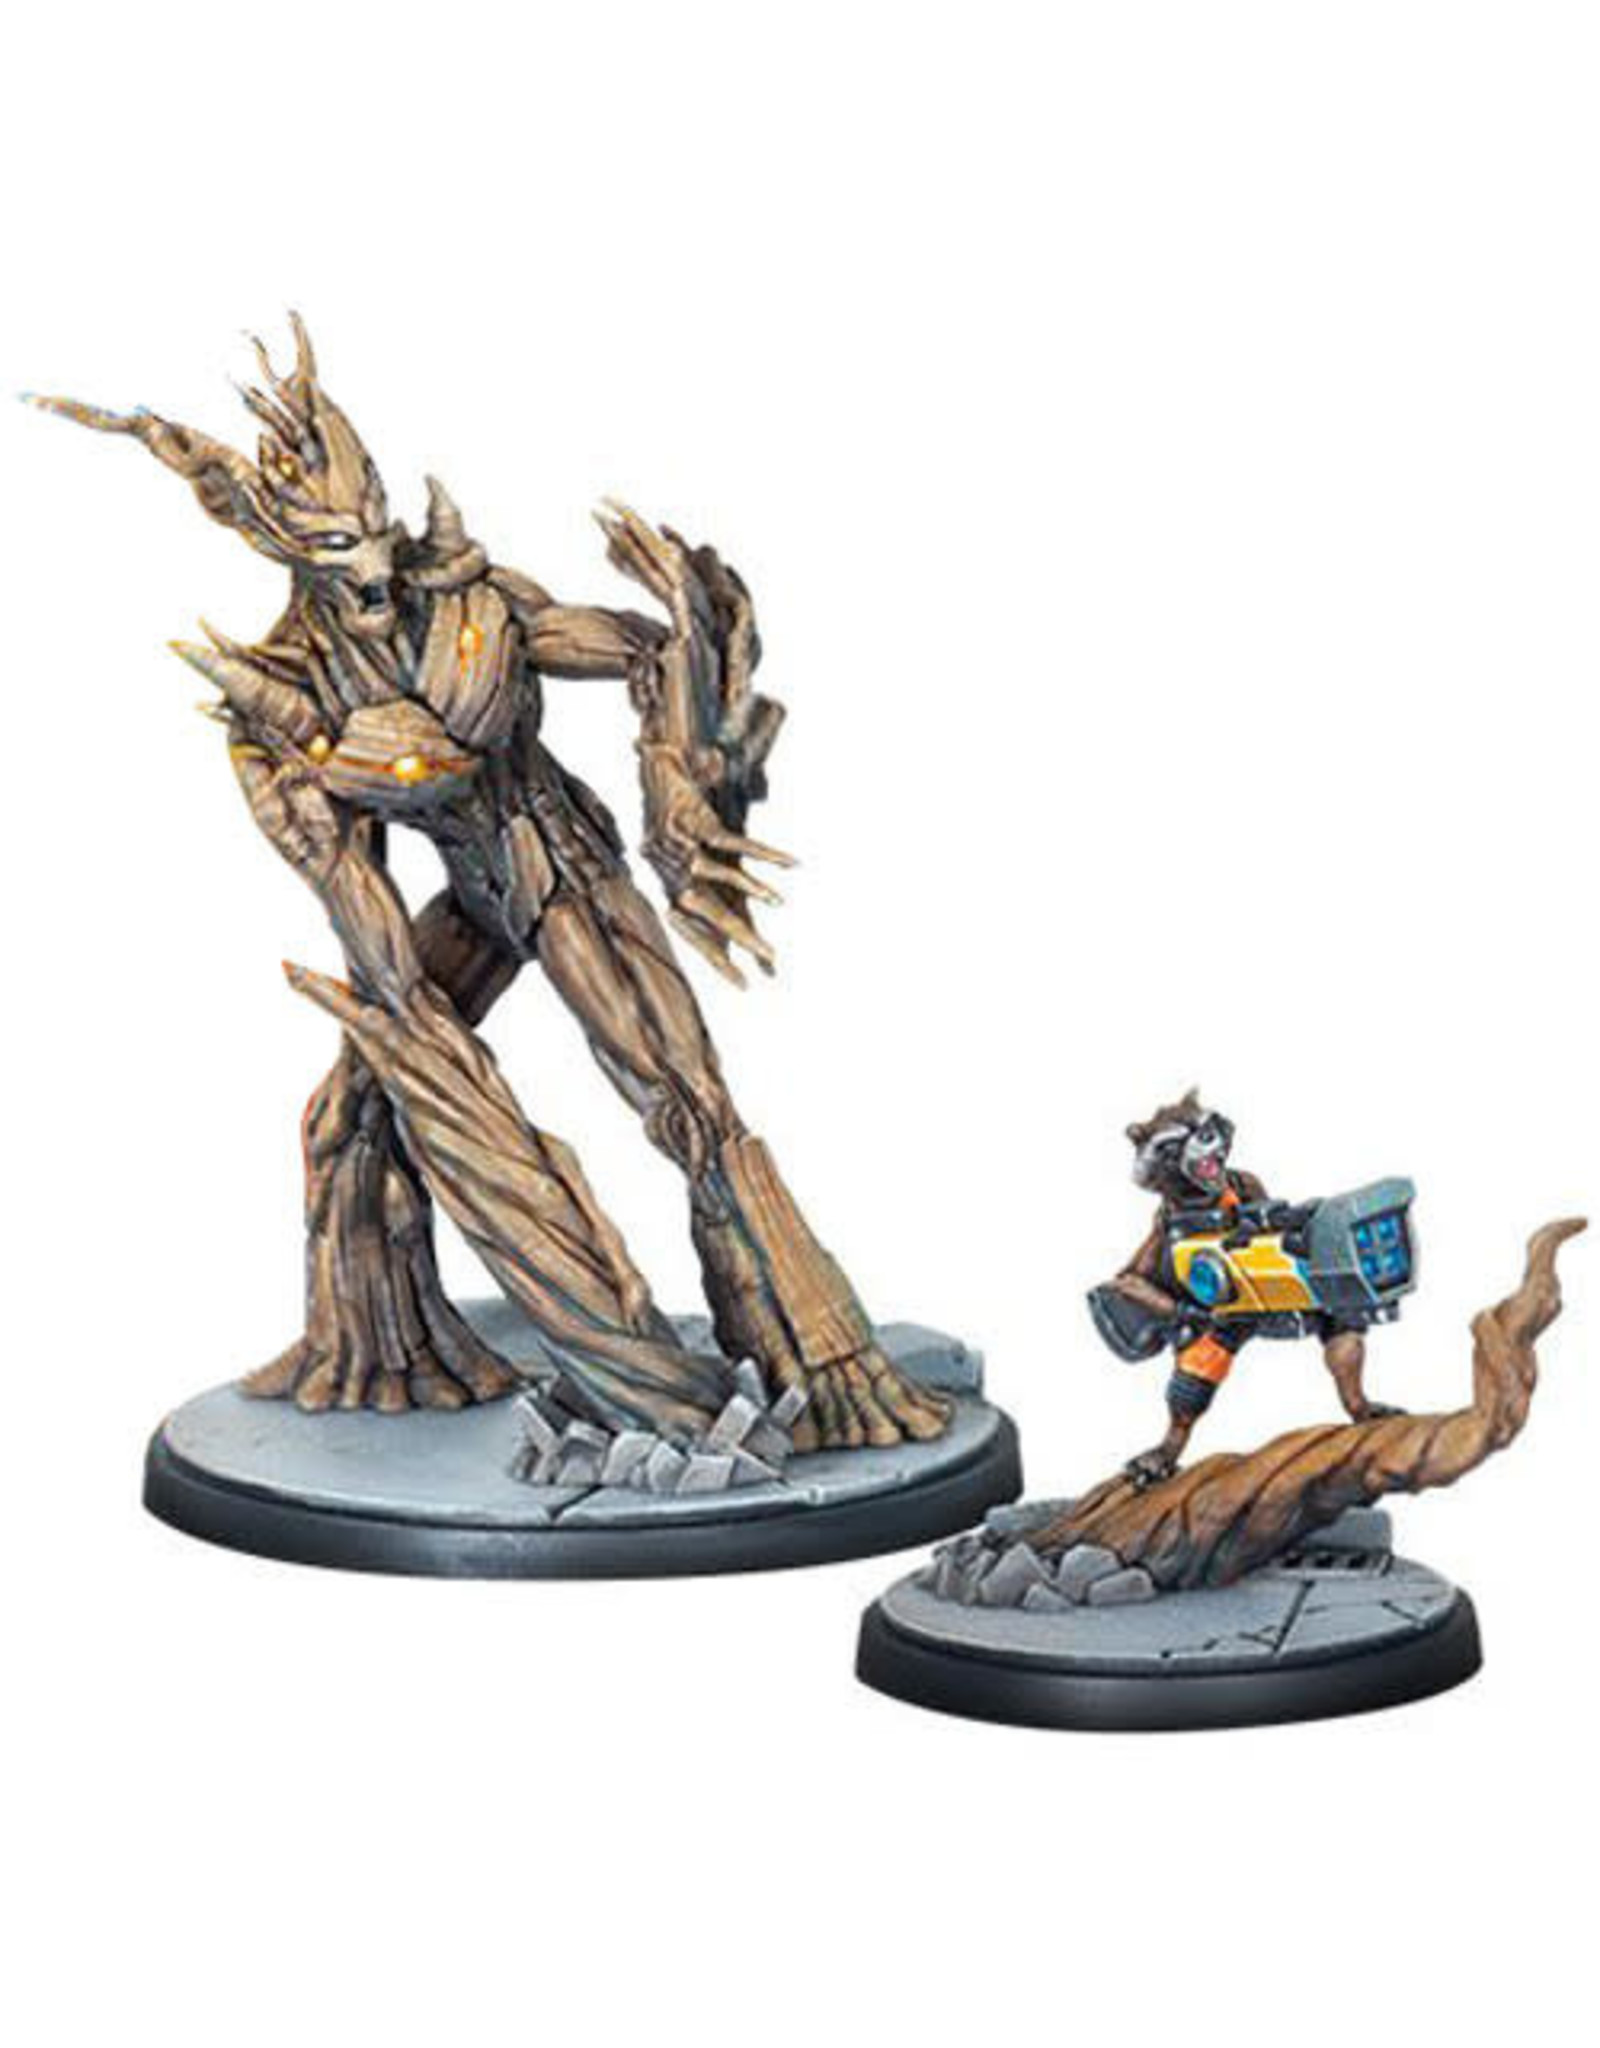 Marvel Crisis Protocol Rocket And Groot Character Pack Go4games Marvel crisis protocol miniatures game black panther and killmonger expansion king t'challa is the leader of wakanda, a technologically advanced nati. atomic mass games marvel crisis protocol rocket and groot character pack